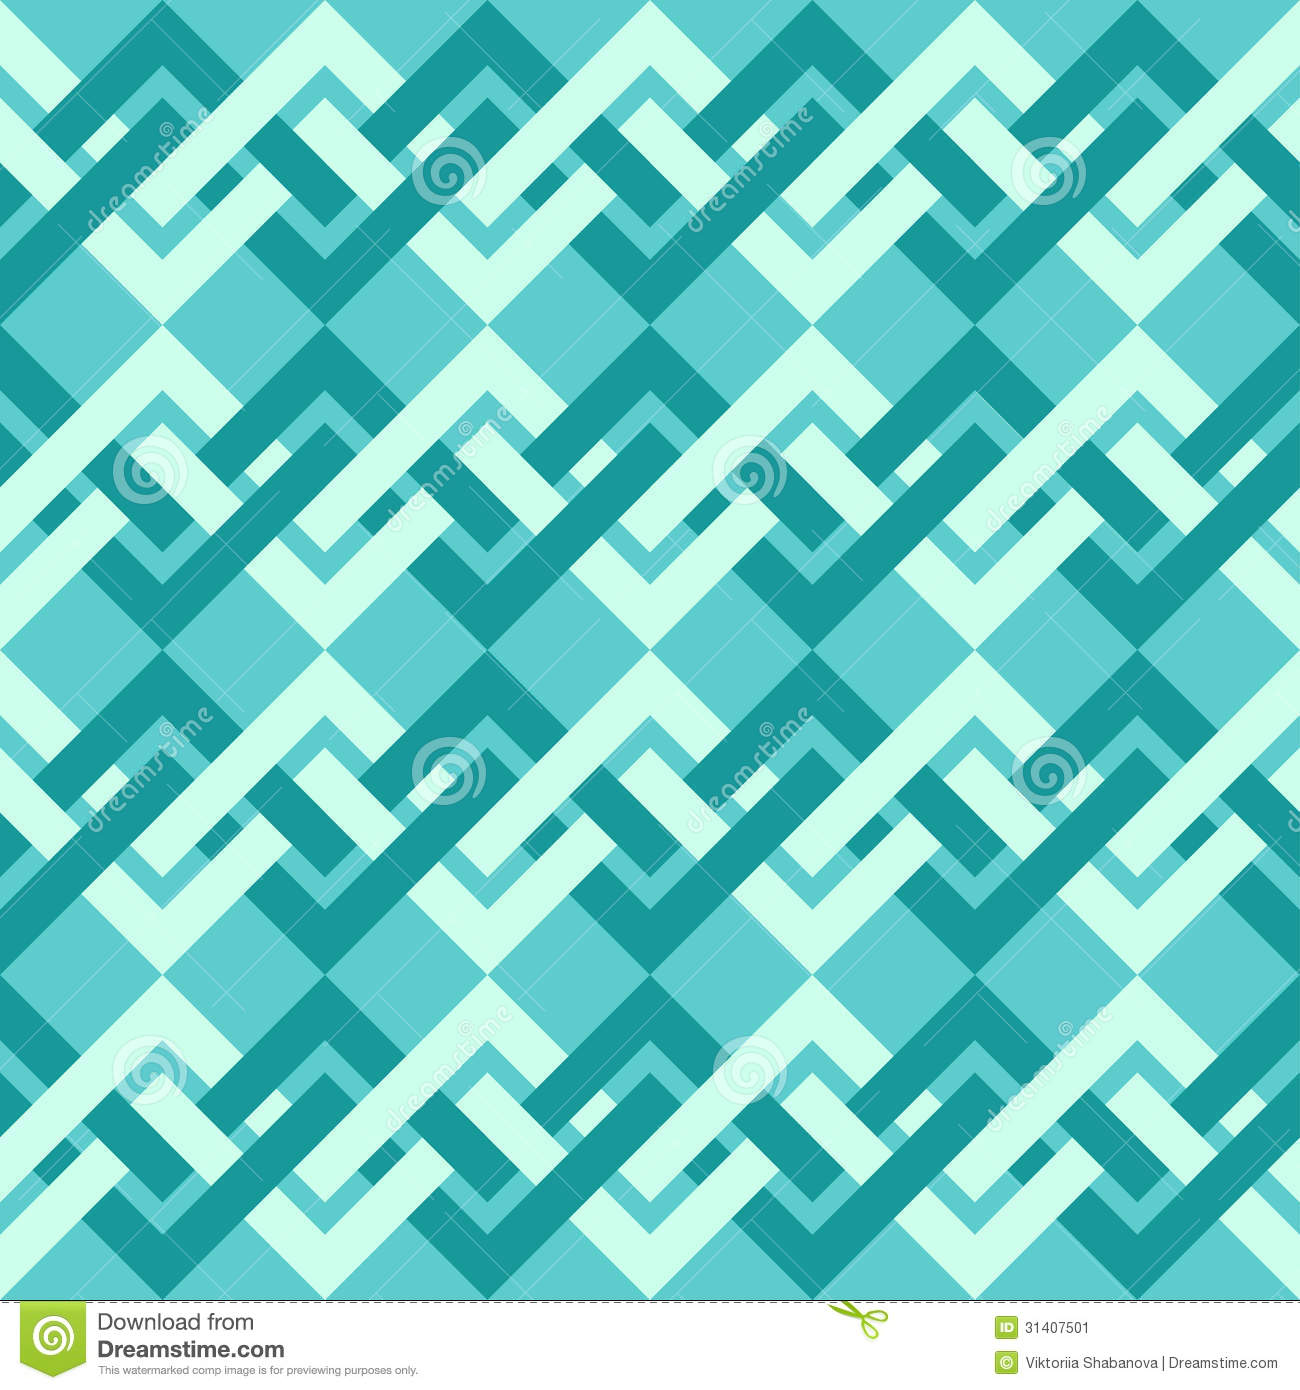 Scrapbook paper as wallpaper - Seamless Pattern Of Interlacing Lines In Retro Style